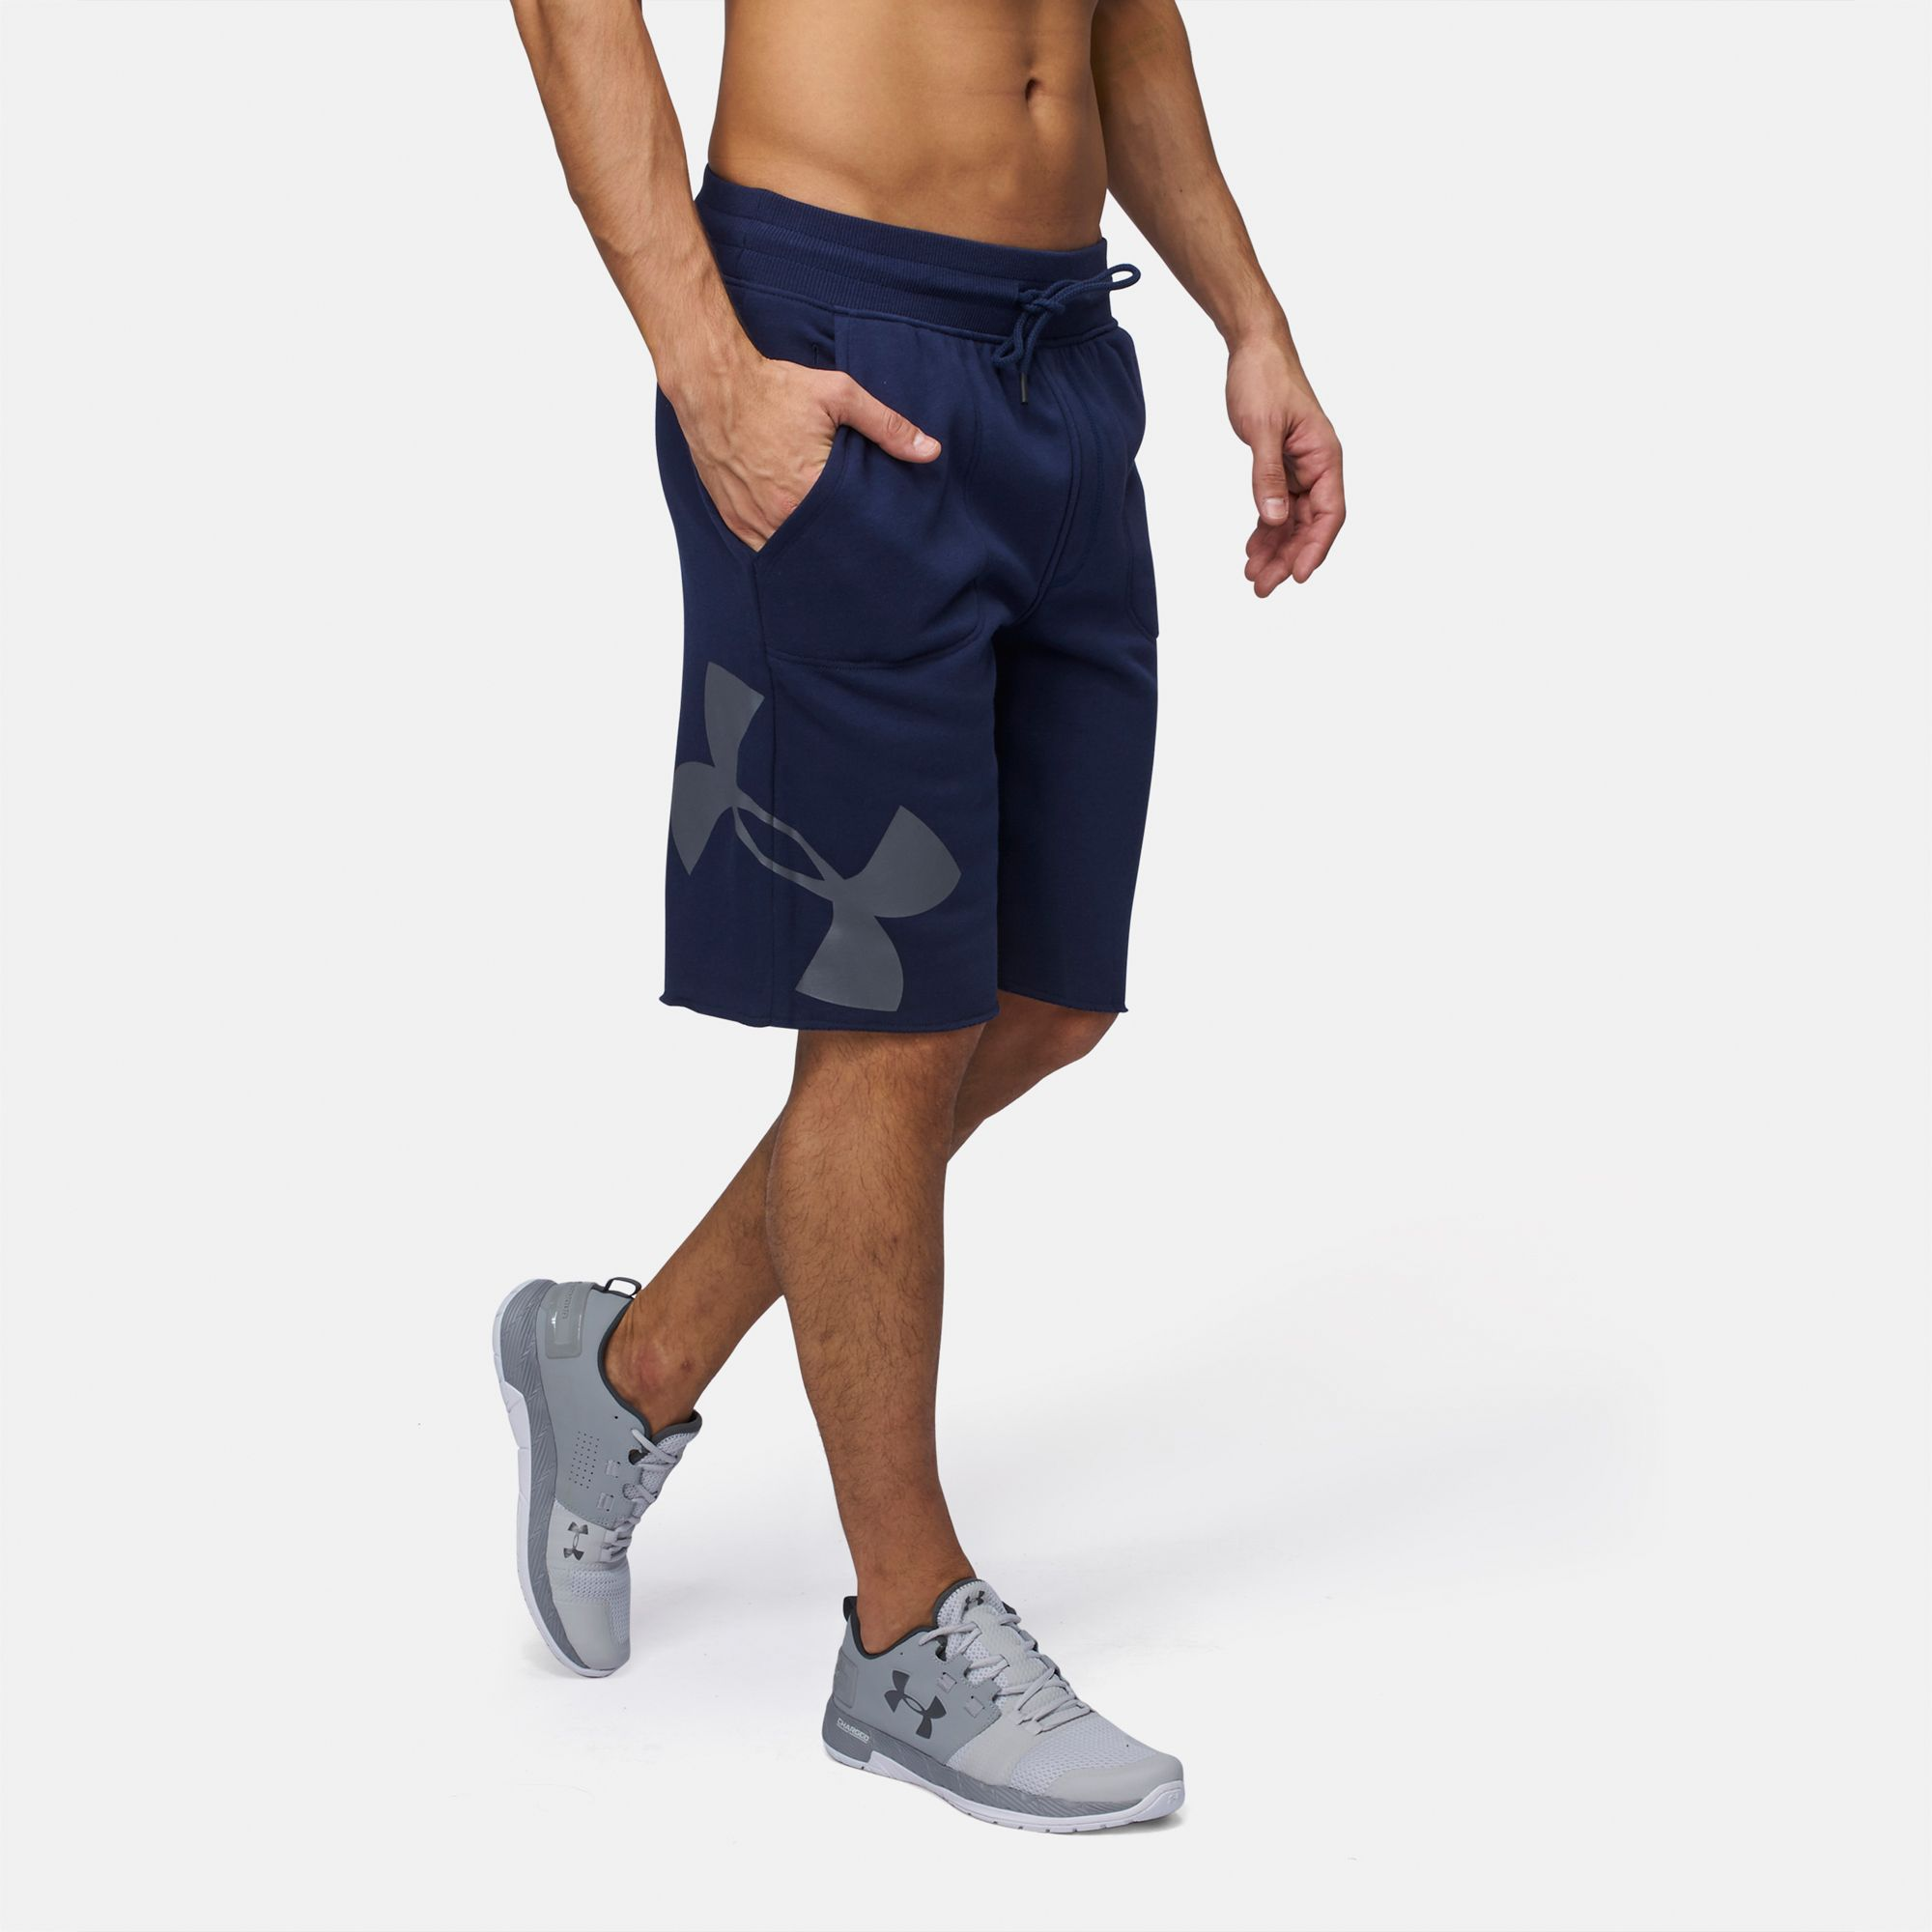 c147767f1ba Under Armour Rival Exploded Graphic Short Uaap 1303137 410 in Kuwait ...